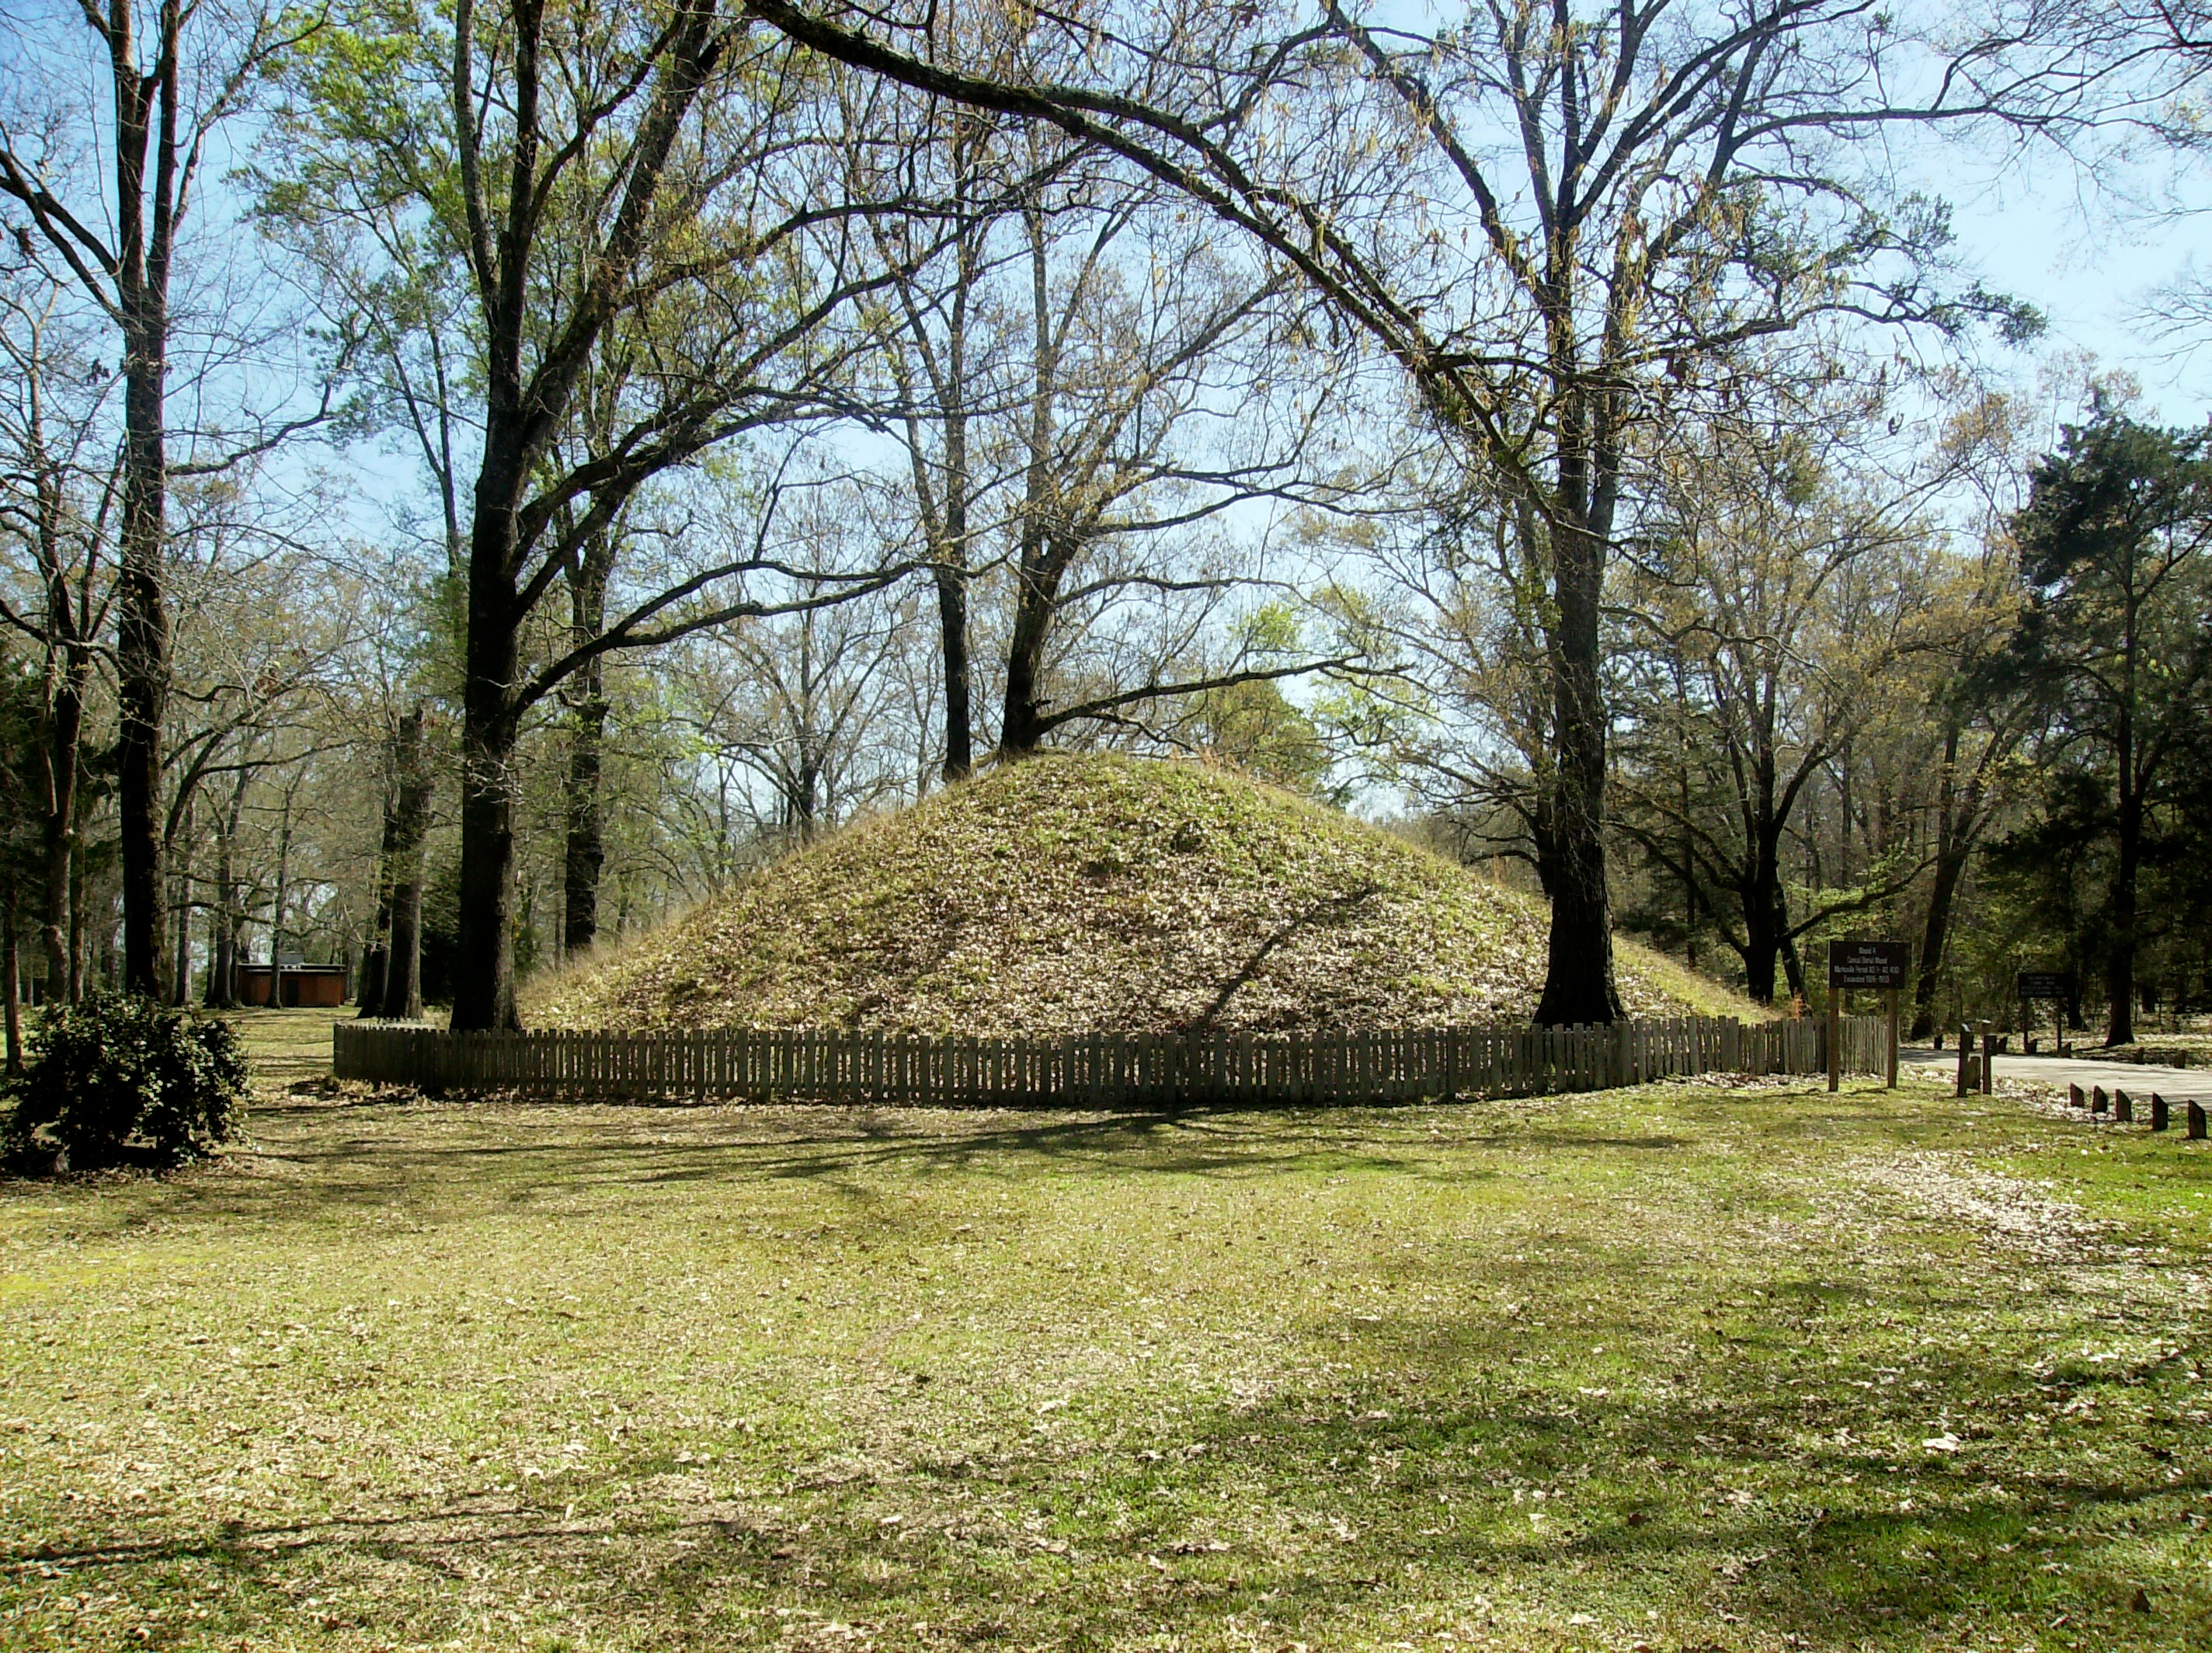 One of the mounds at the site